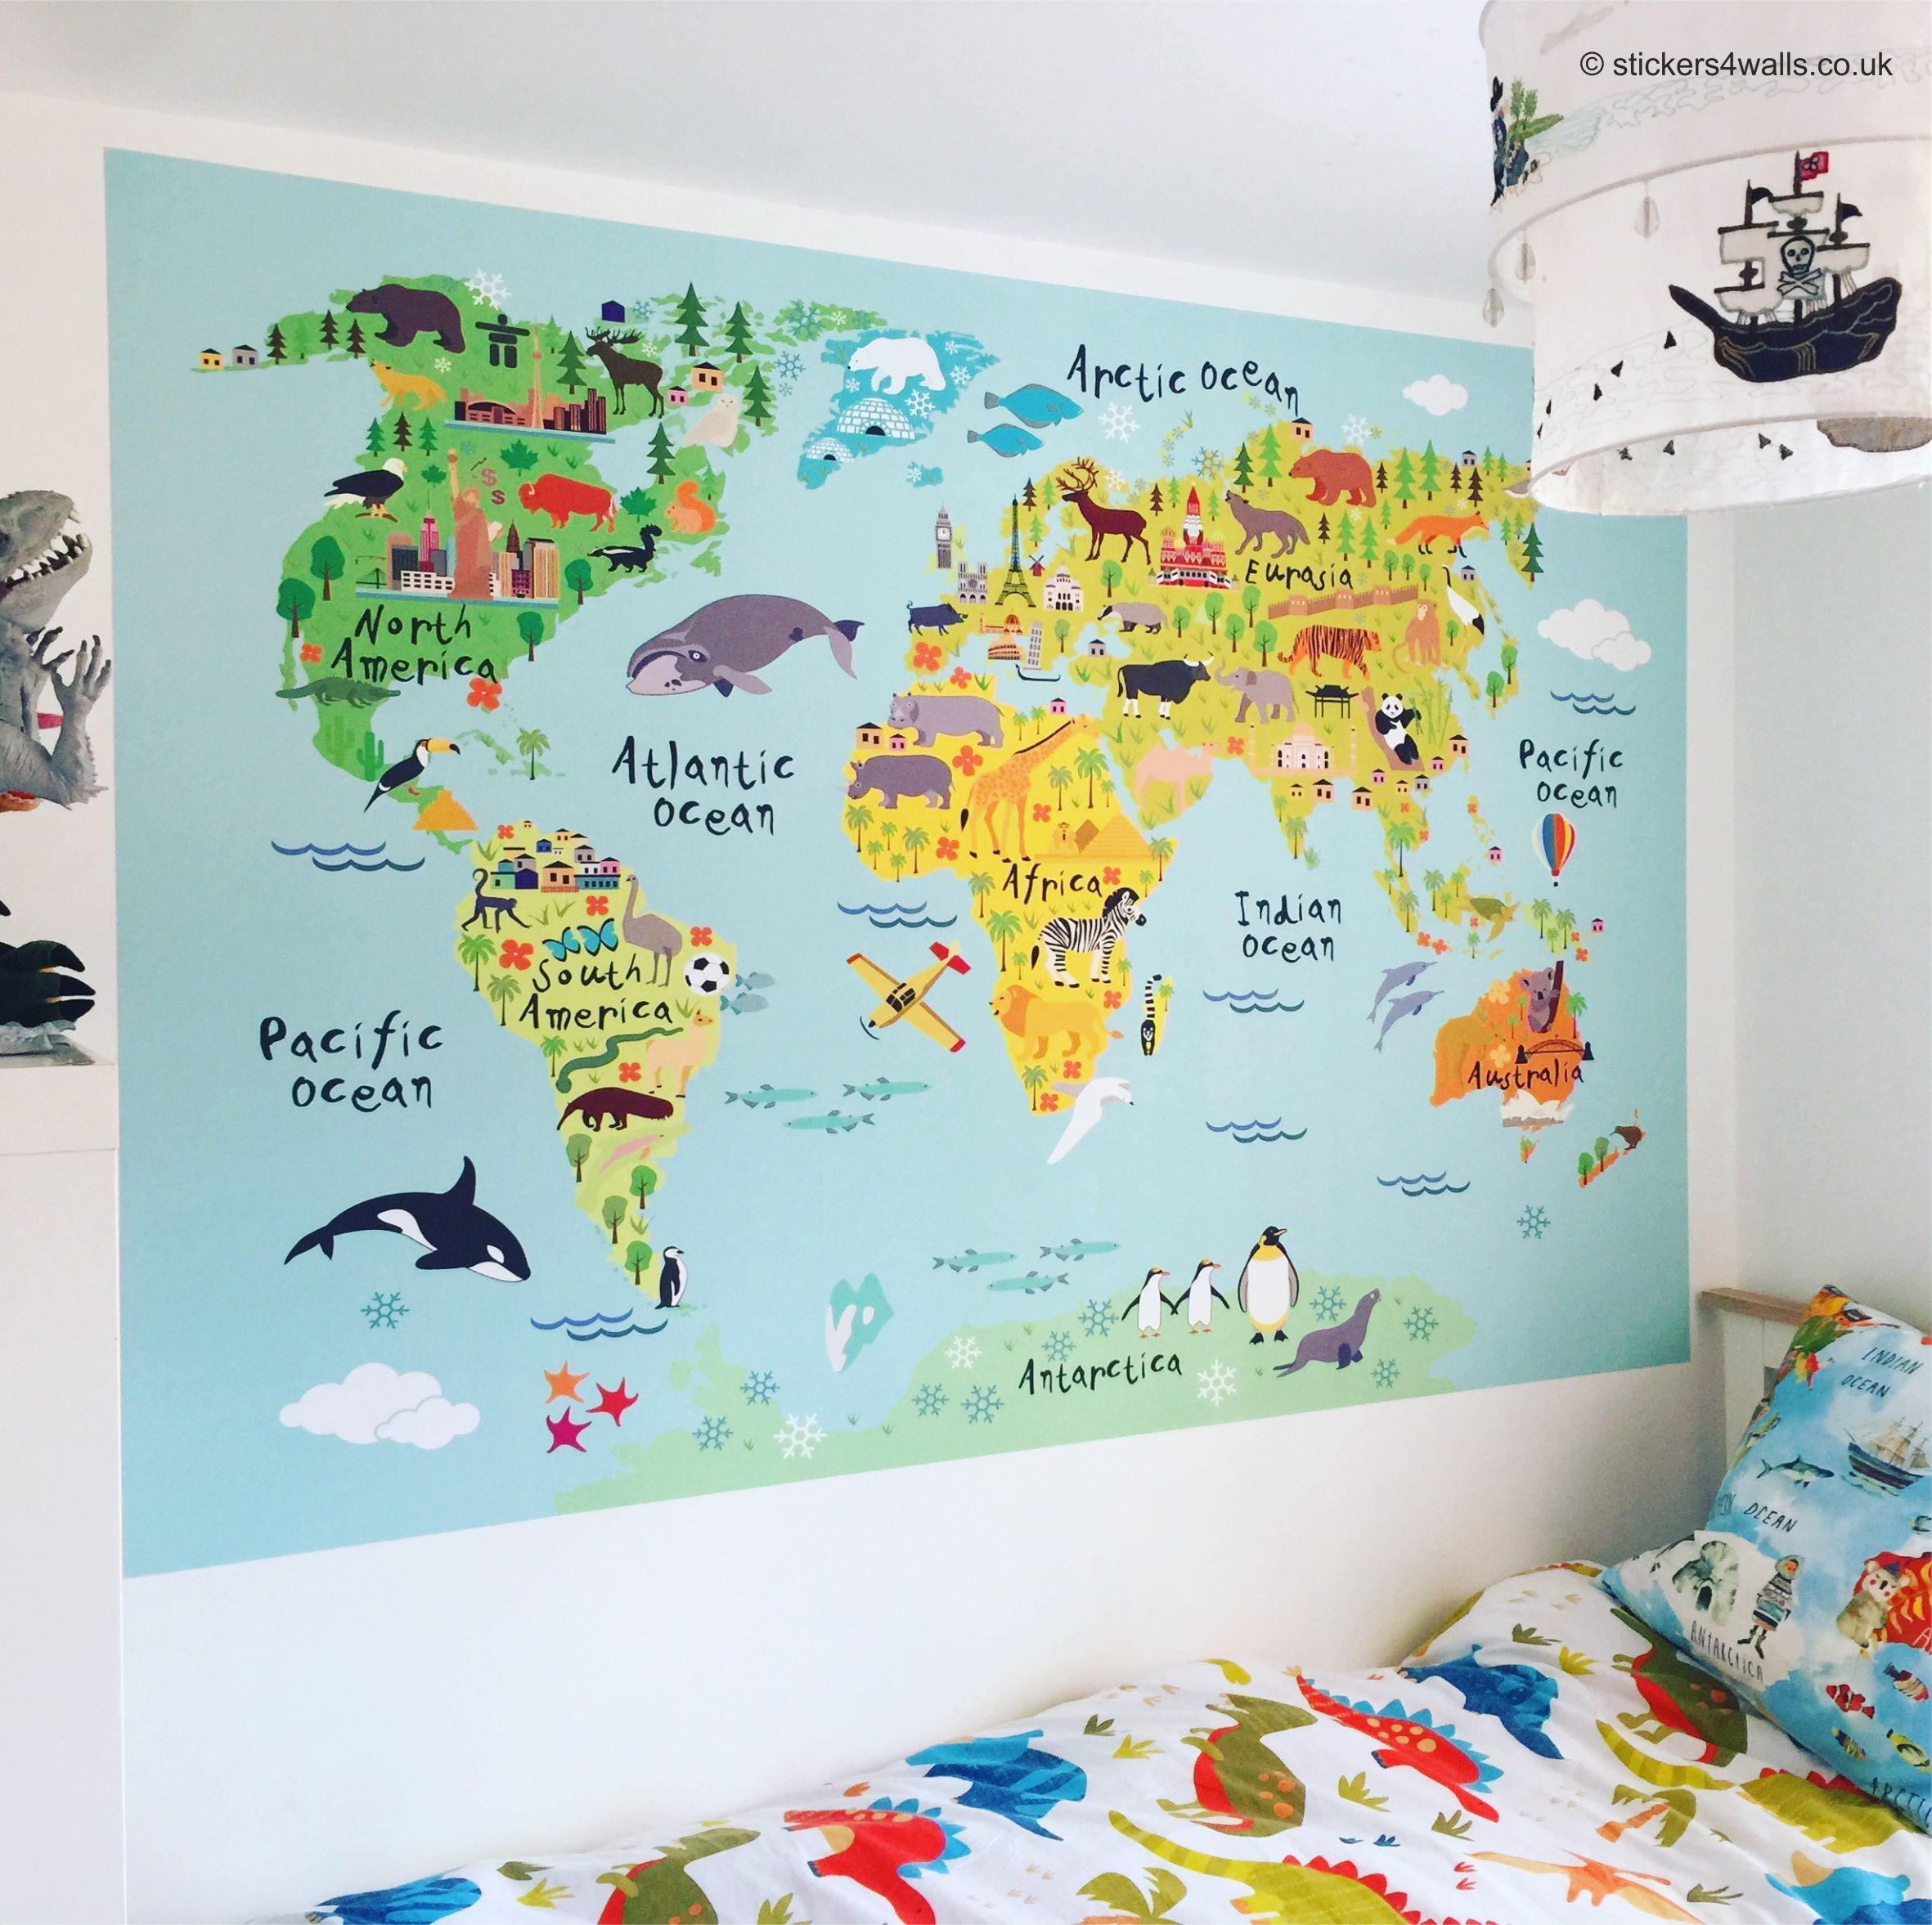 Buy now a fantastic world map wall sticker made from high quality buy now a fantastic world map wall sticker made from high quality fabric wall sticker material gumiabroncs Choice Image